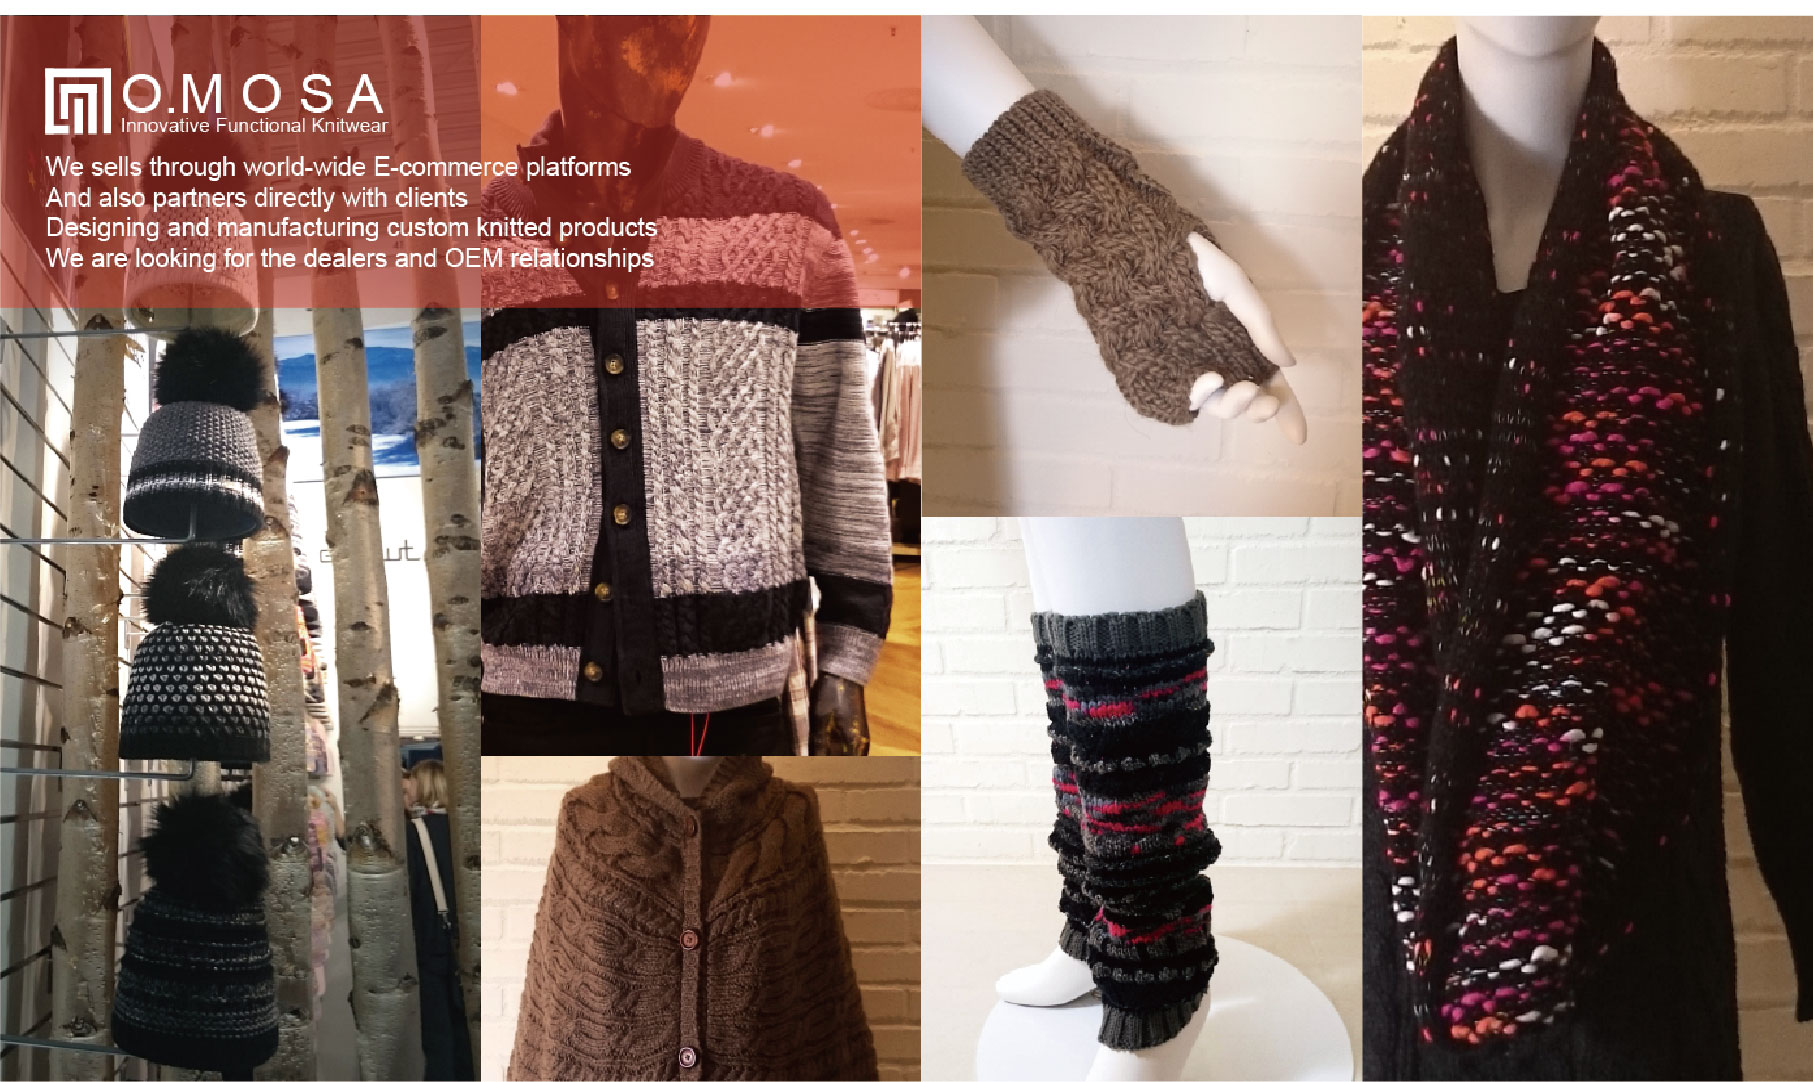 O.MOSA fashion and functional knitted accessories and sweaters.